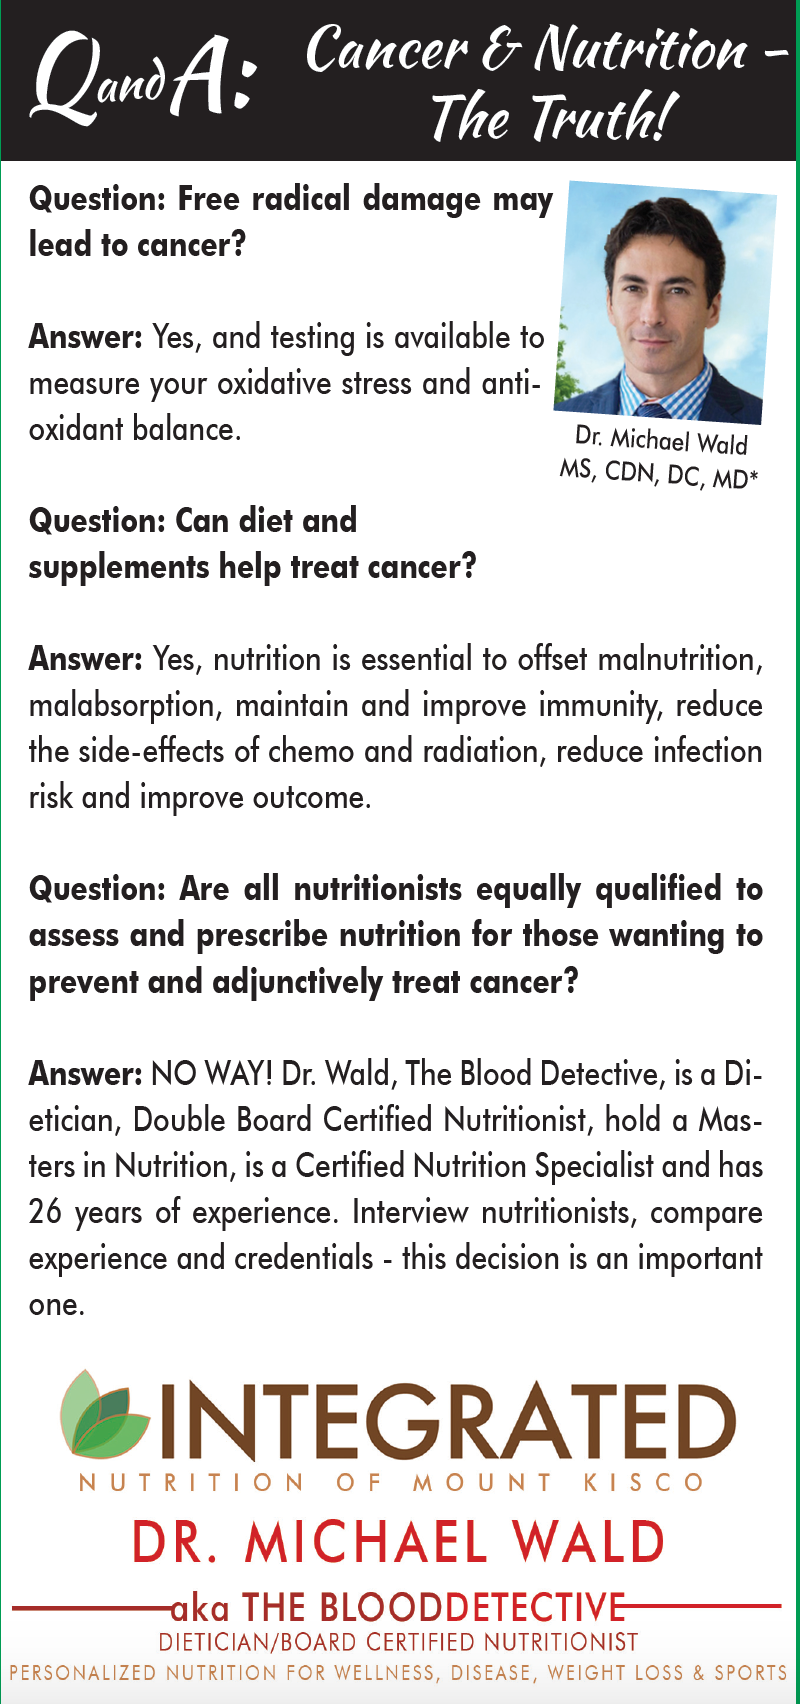 Cancer & Nutrition Q and A